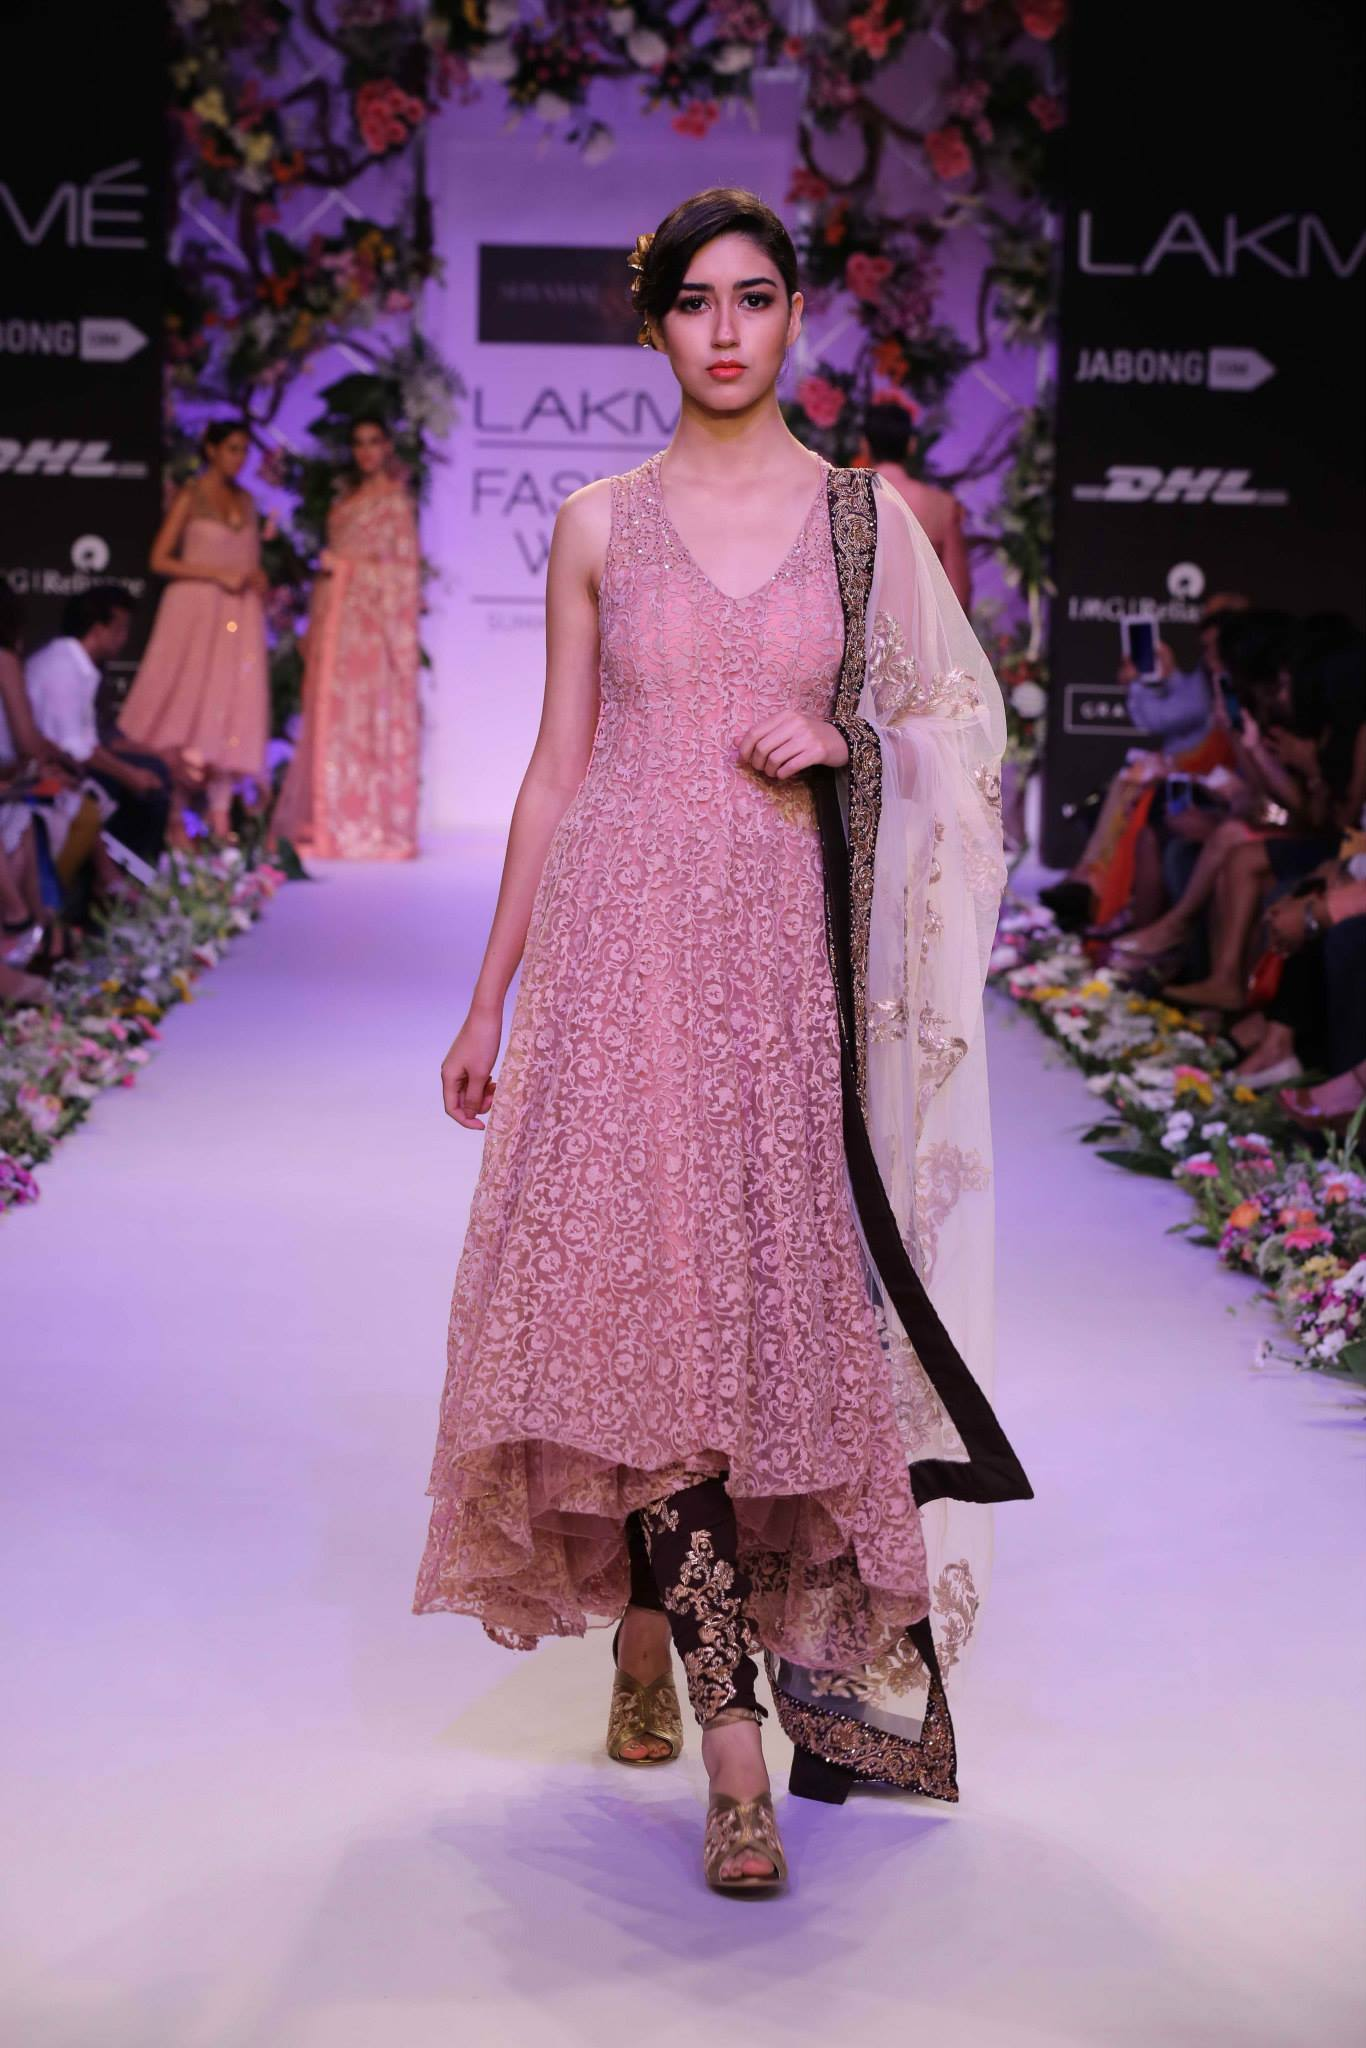 Lakmé Fashion Week Winter Festive 2018: Shyamal & Bhumika At Lakme Fashion Week S/R 2014